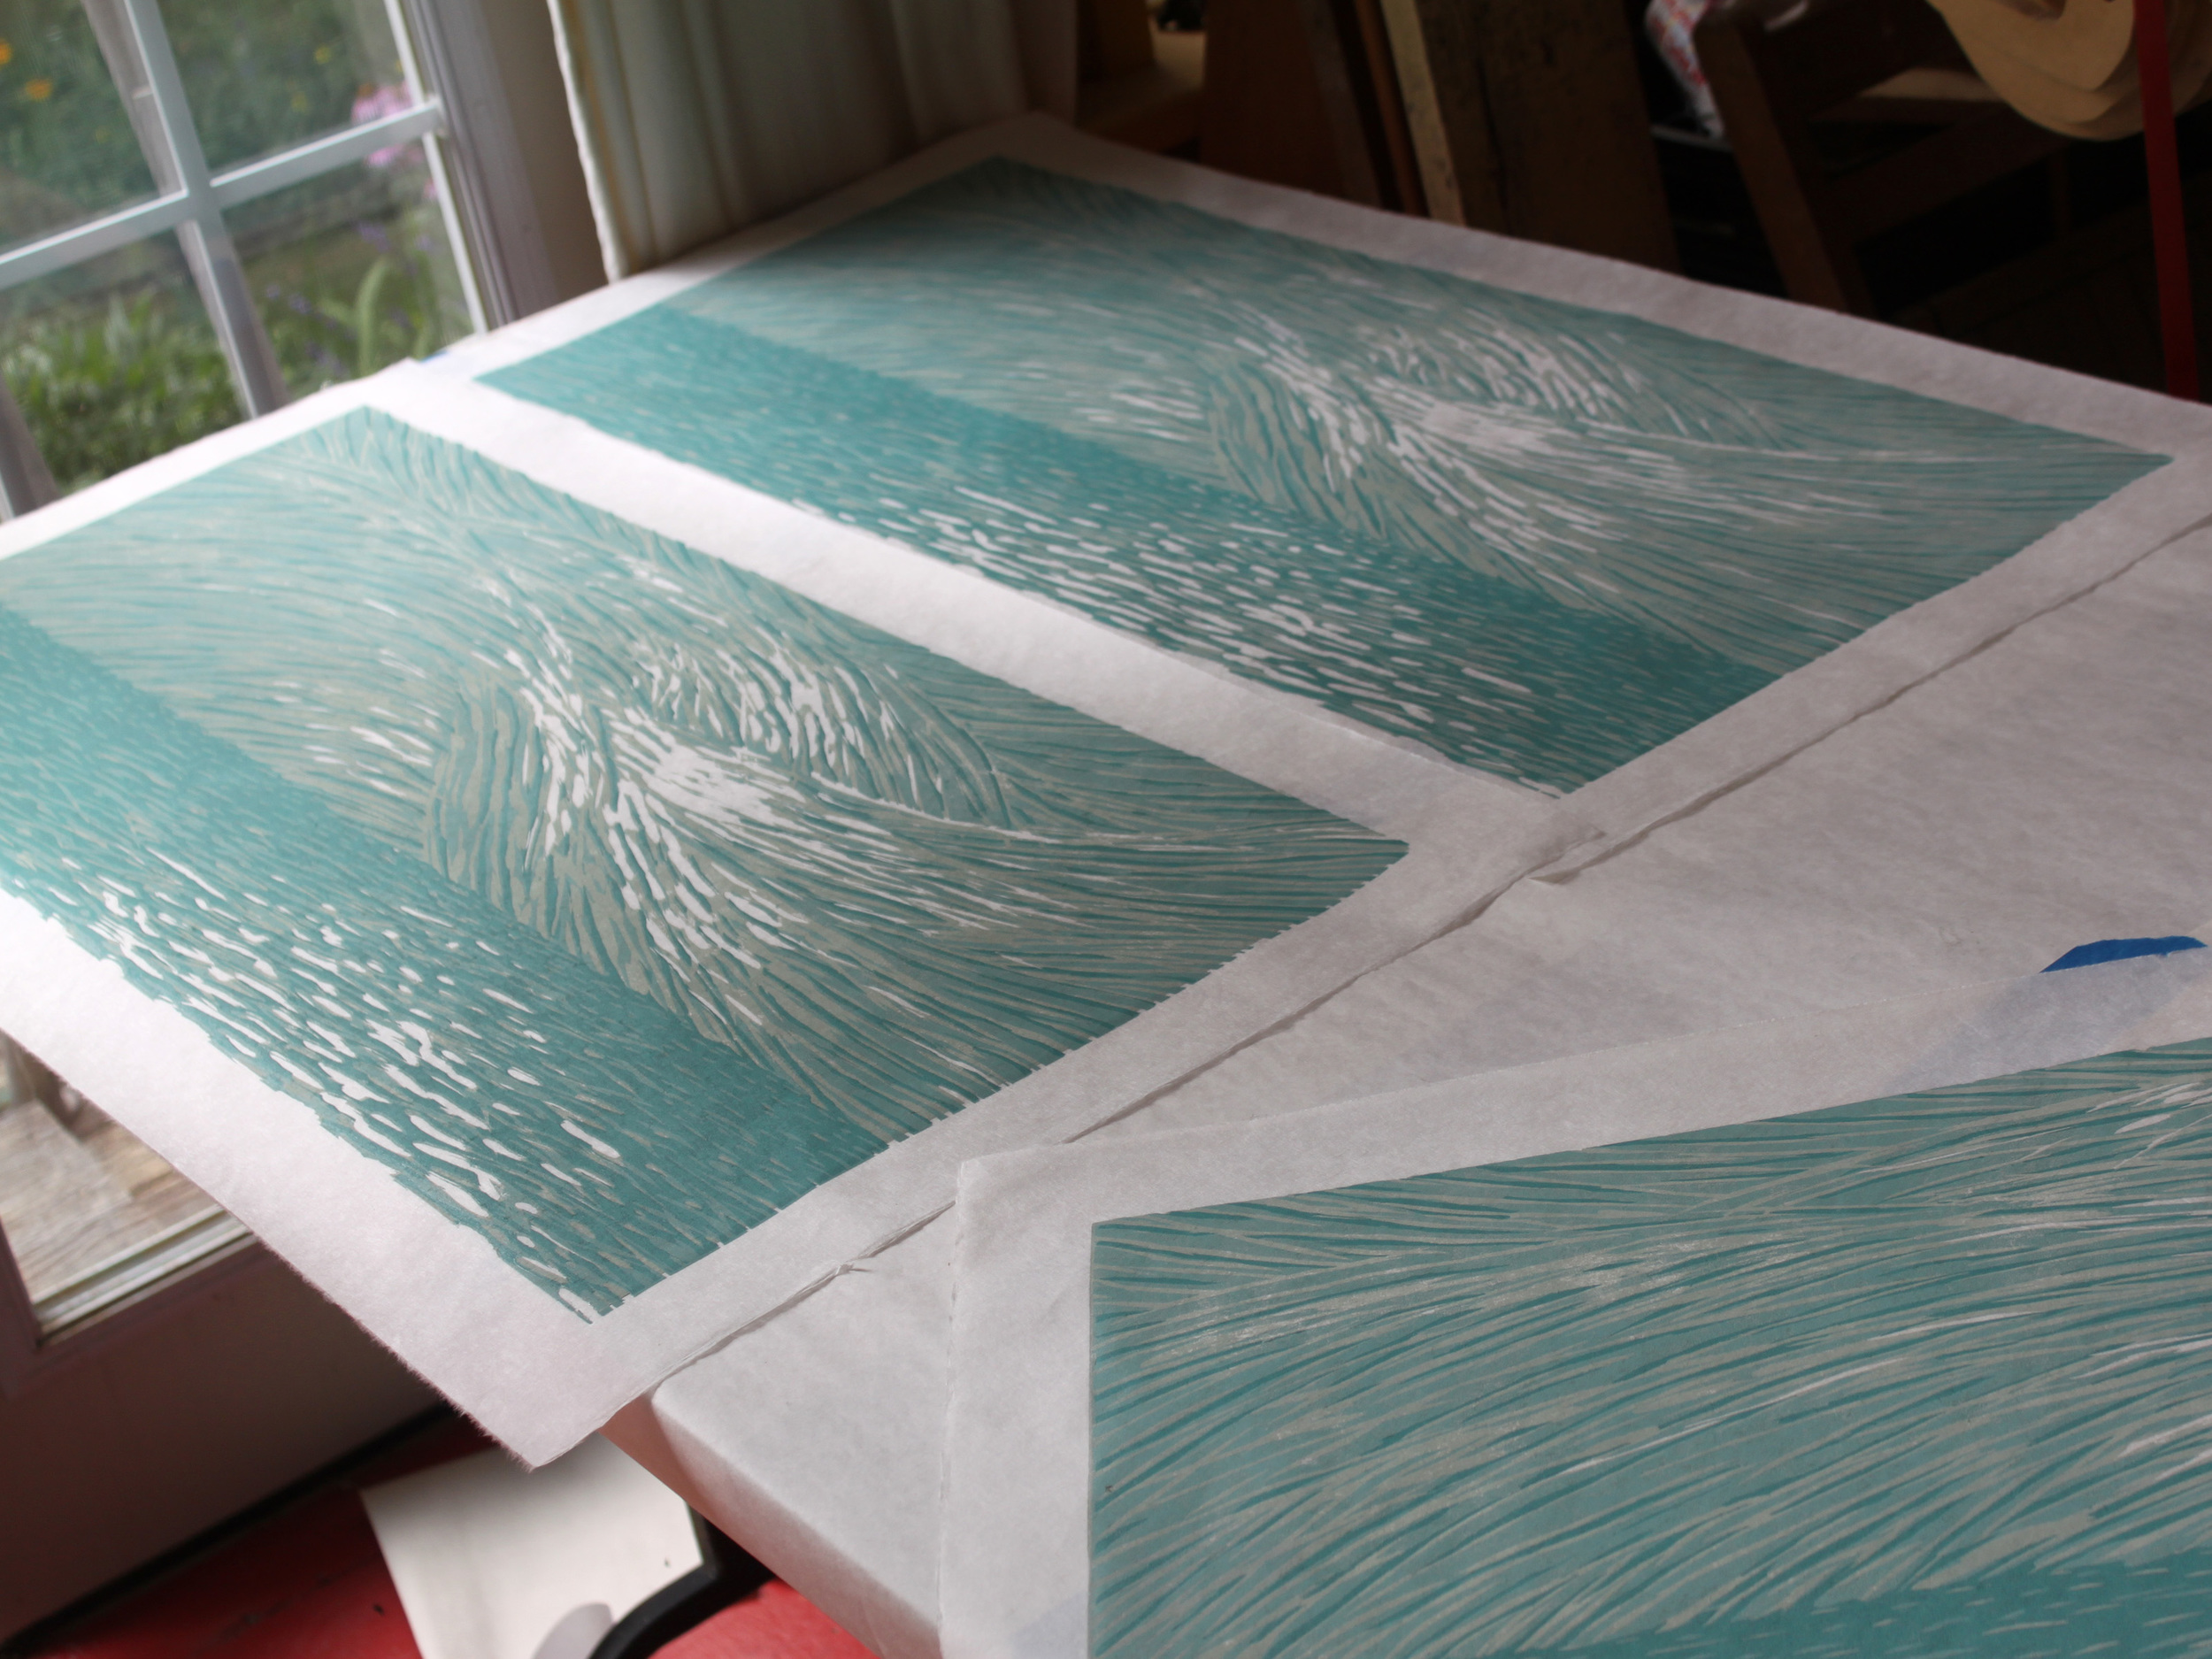 Printing the third color